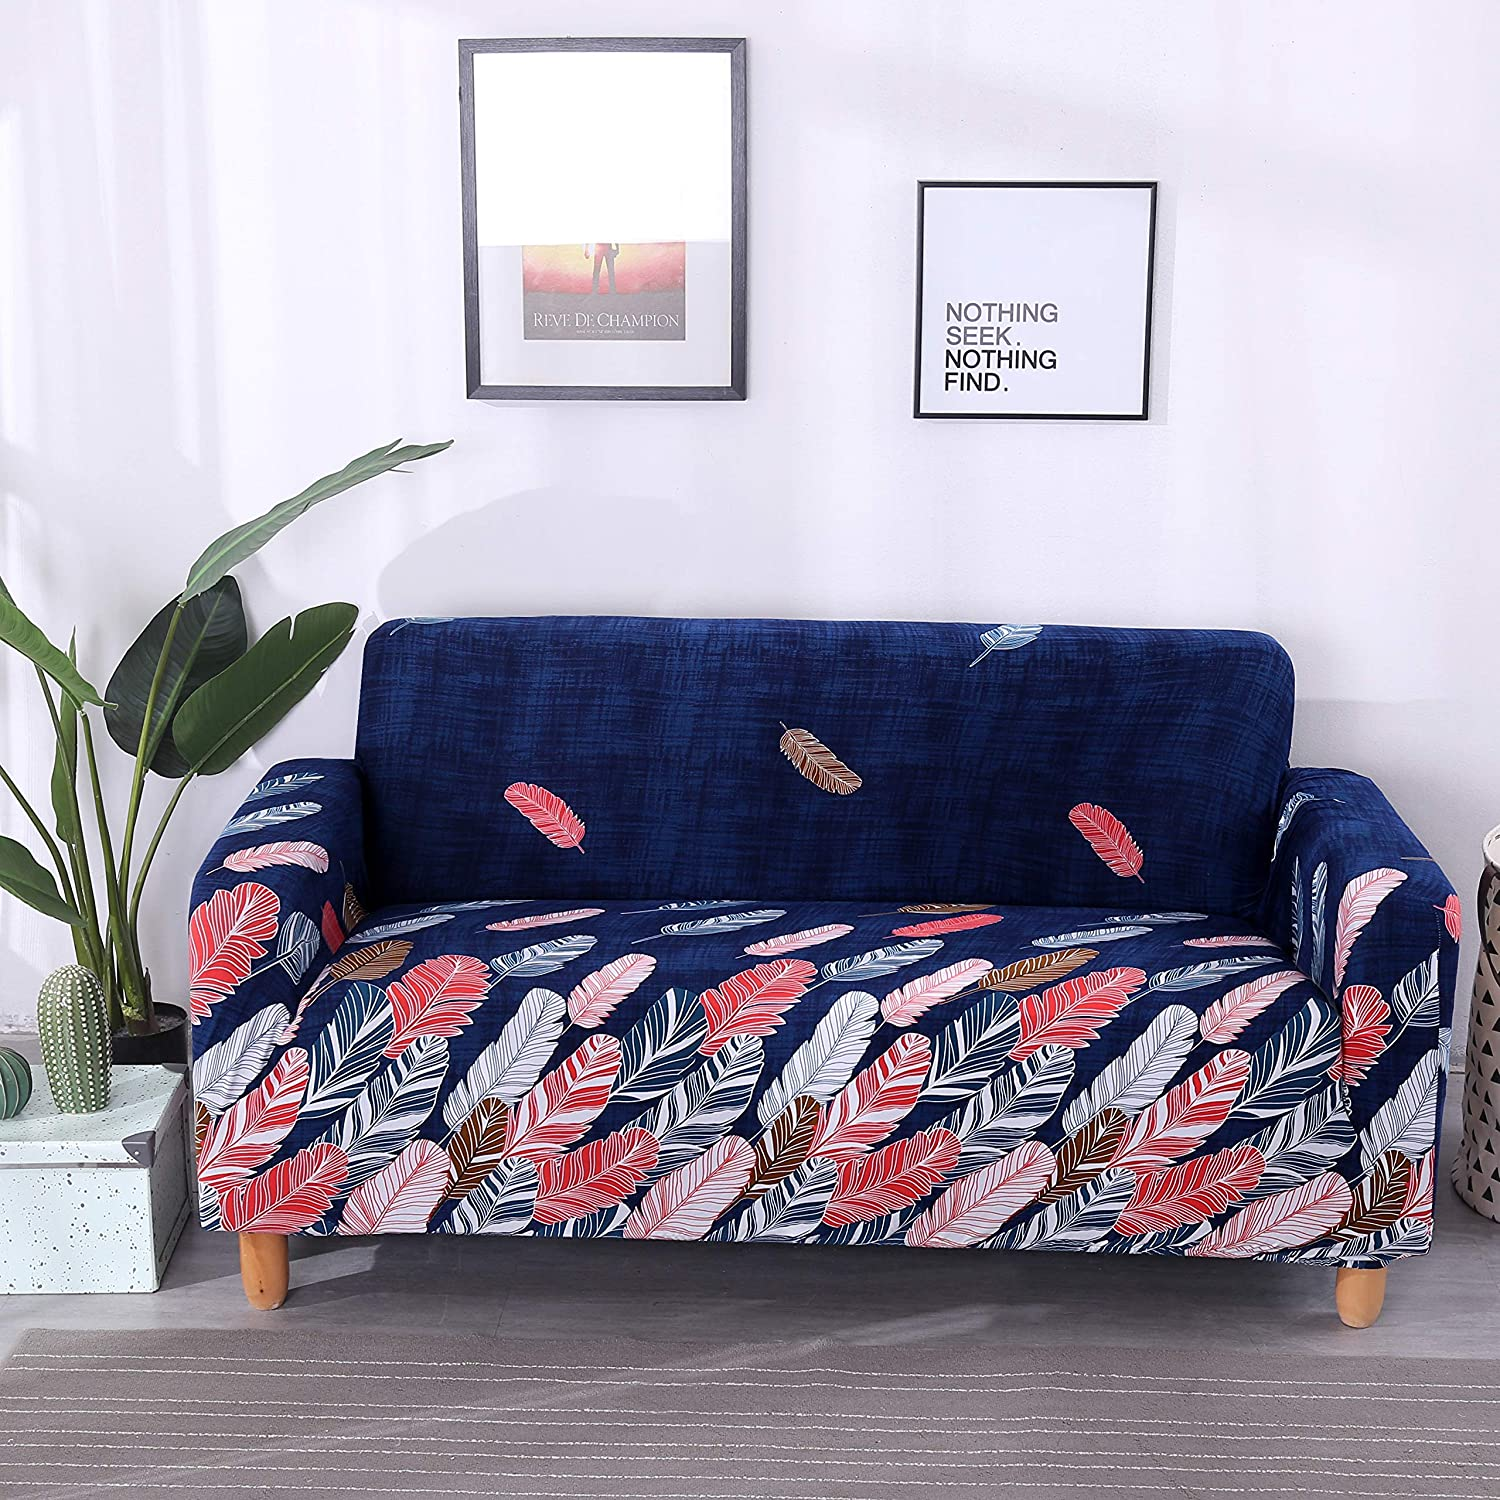 Outstanding Lamberia Printed Sofa Cover Stretch Couch Cover Sofa Slipcovers For 4 Cushion Couch With One Free Pillow Case Colorful Leaves Sofa 4 Seater Ibusinesslaw Wood Chair Design Ideas Ibusinesslaworg